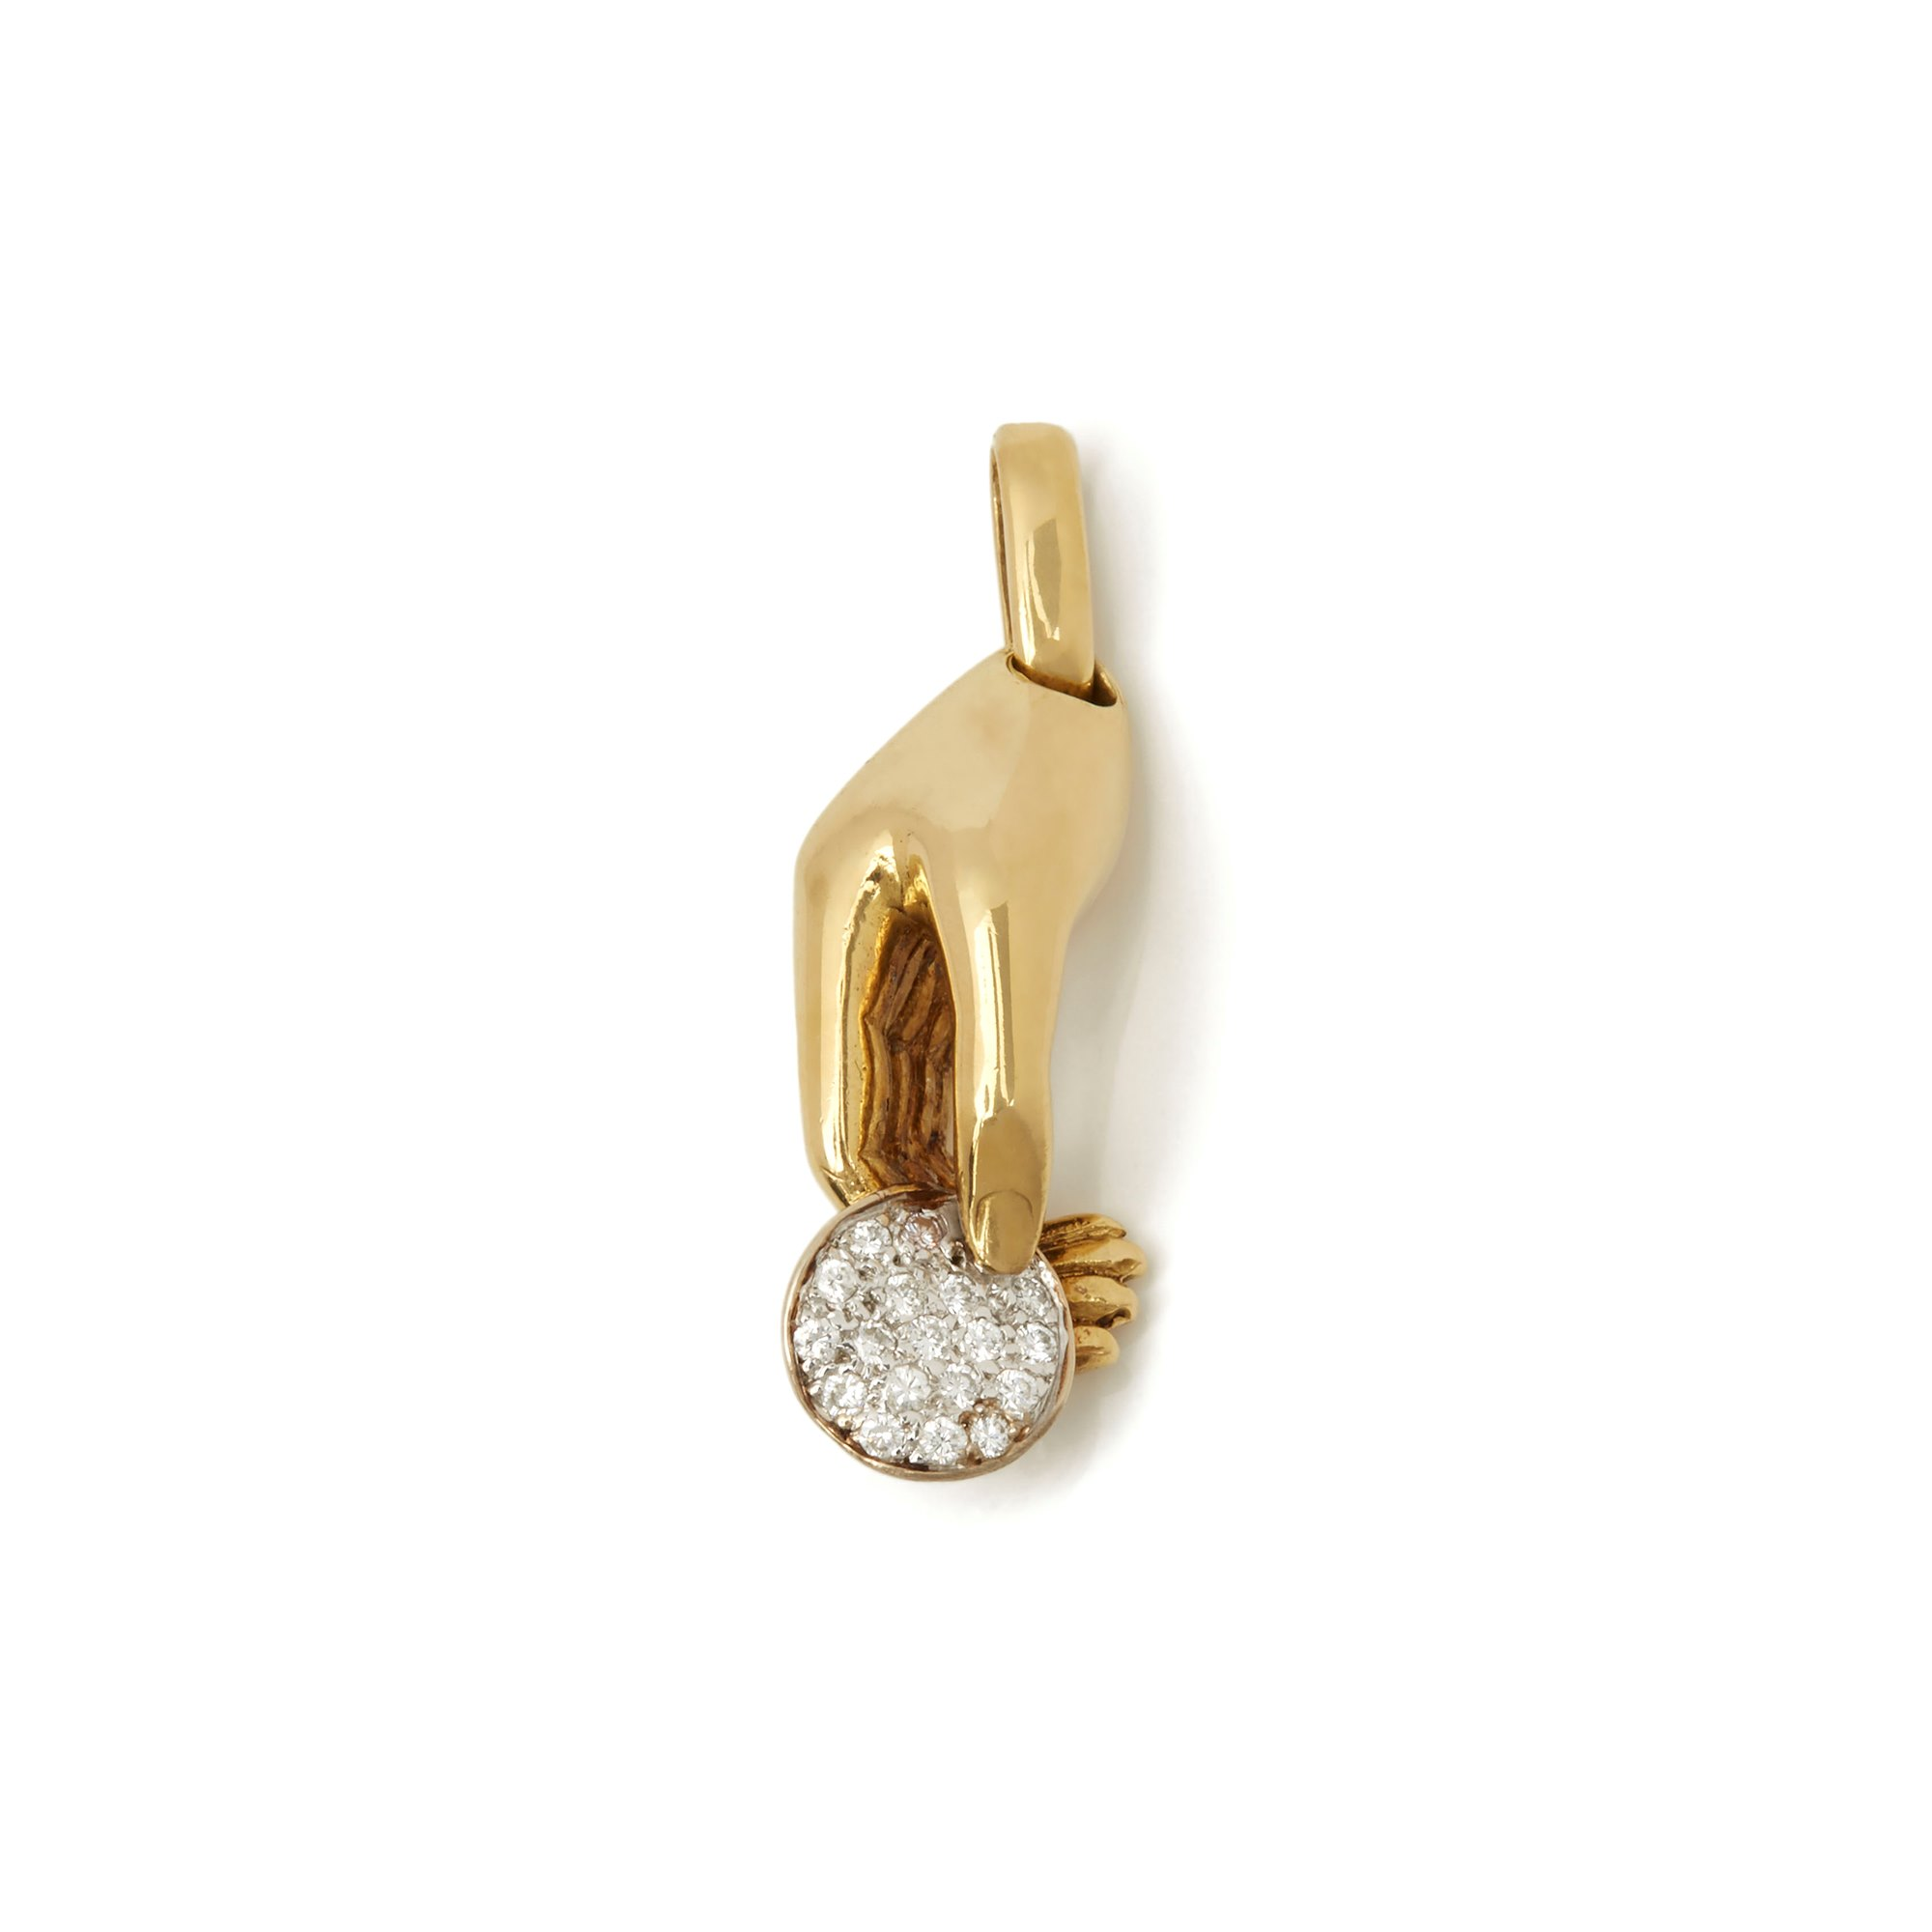 Cartier 18k Yellow & White Gold Diamond Vintage Hand Pendant